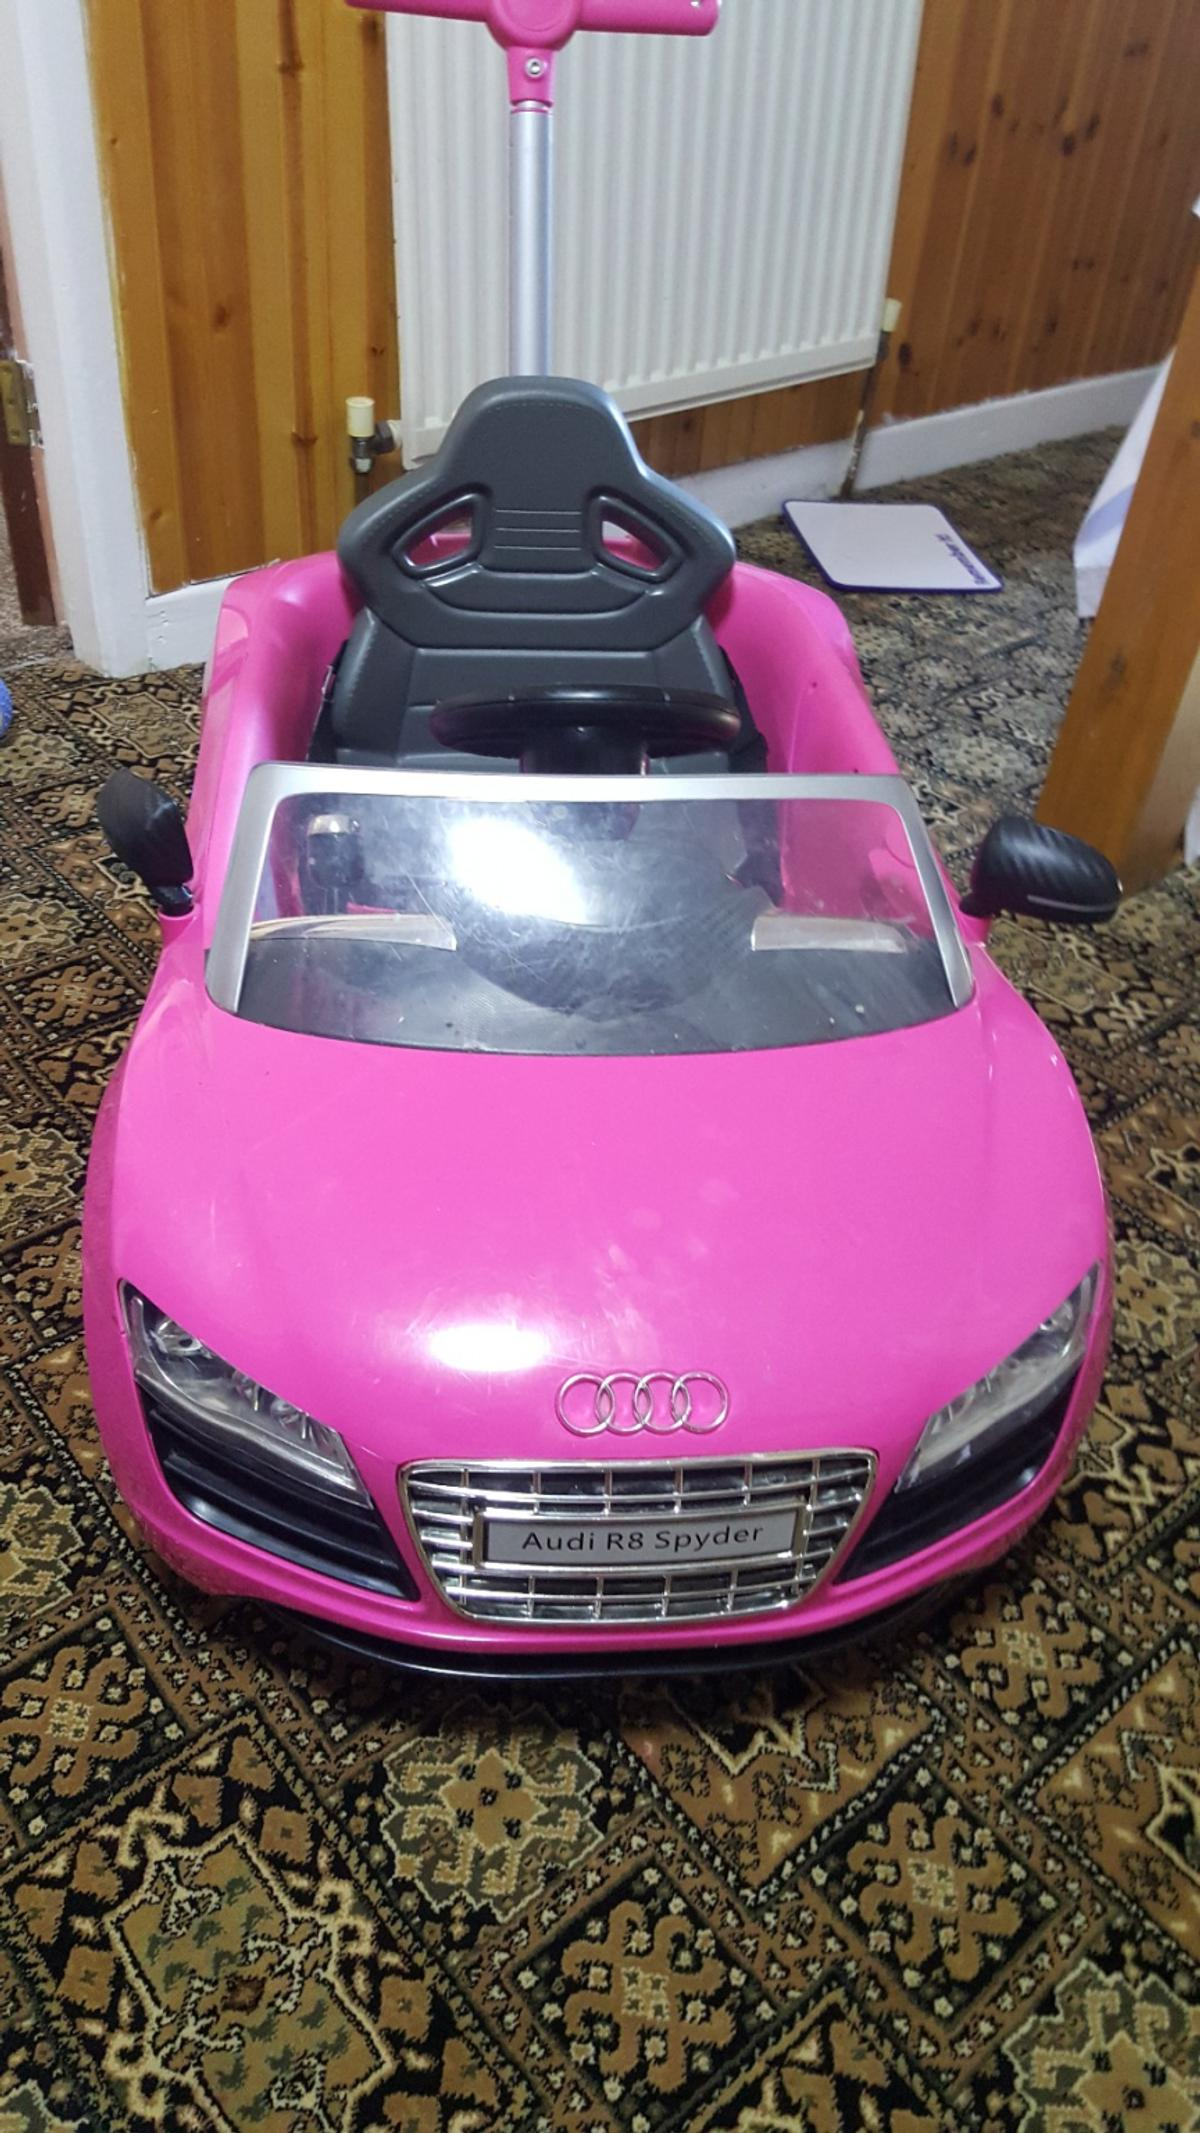 Girls Pink Audi R8 Spyder Push Chair Rrp 100 In Bd9 Bradford For 50 00 For Sale Shpock